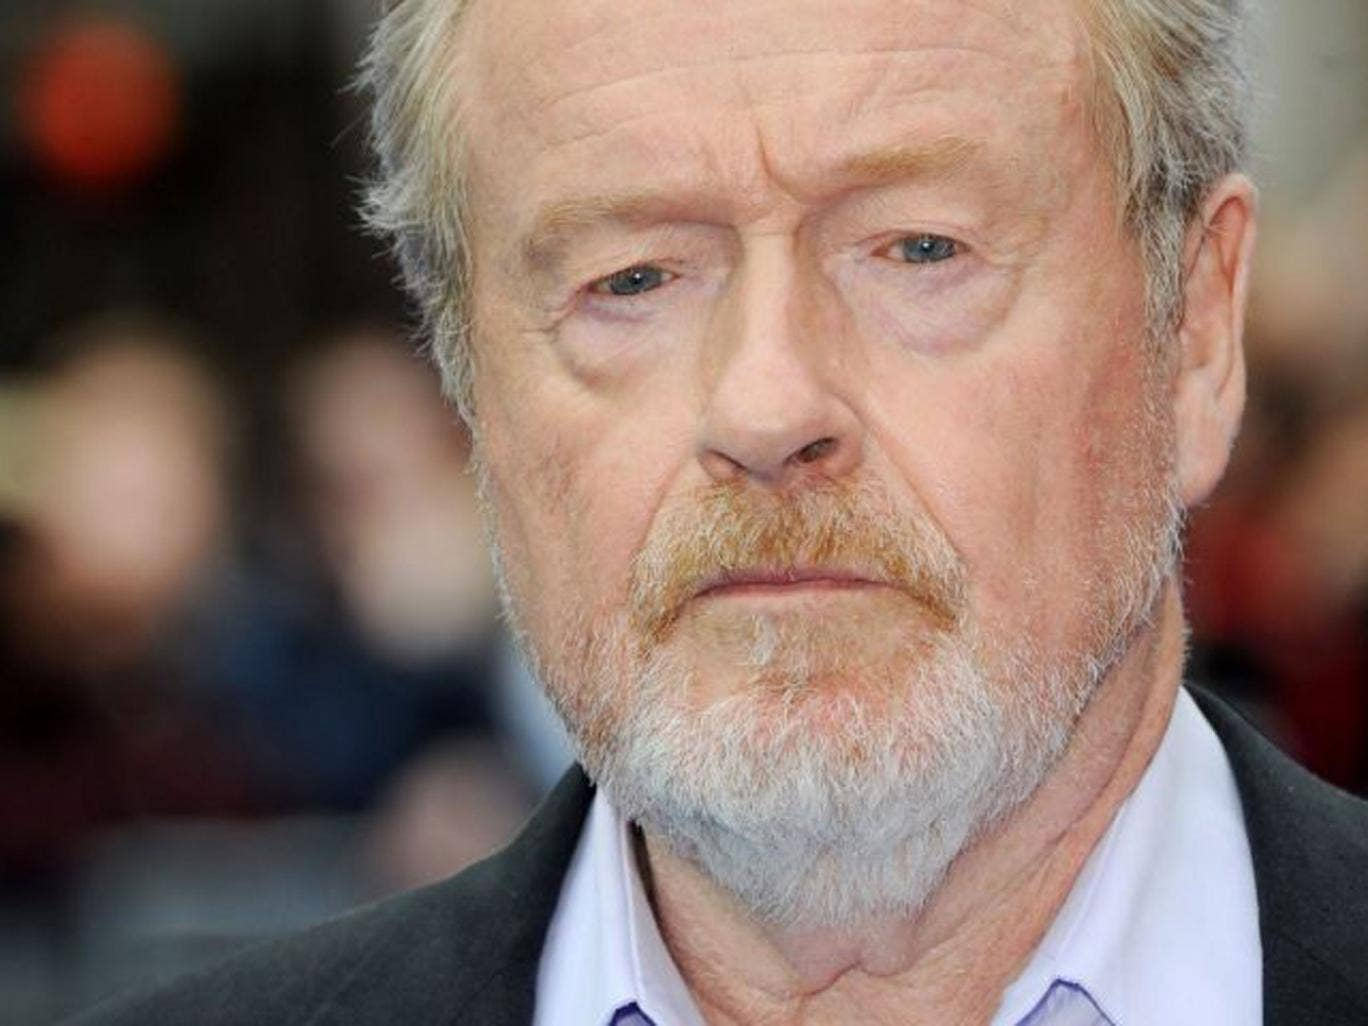 Ridley Scott will produce a film about a government agency of psychic spies